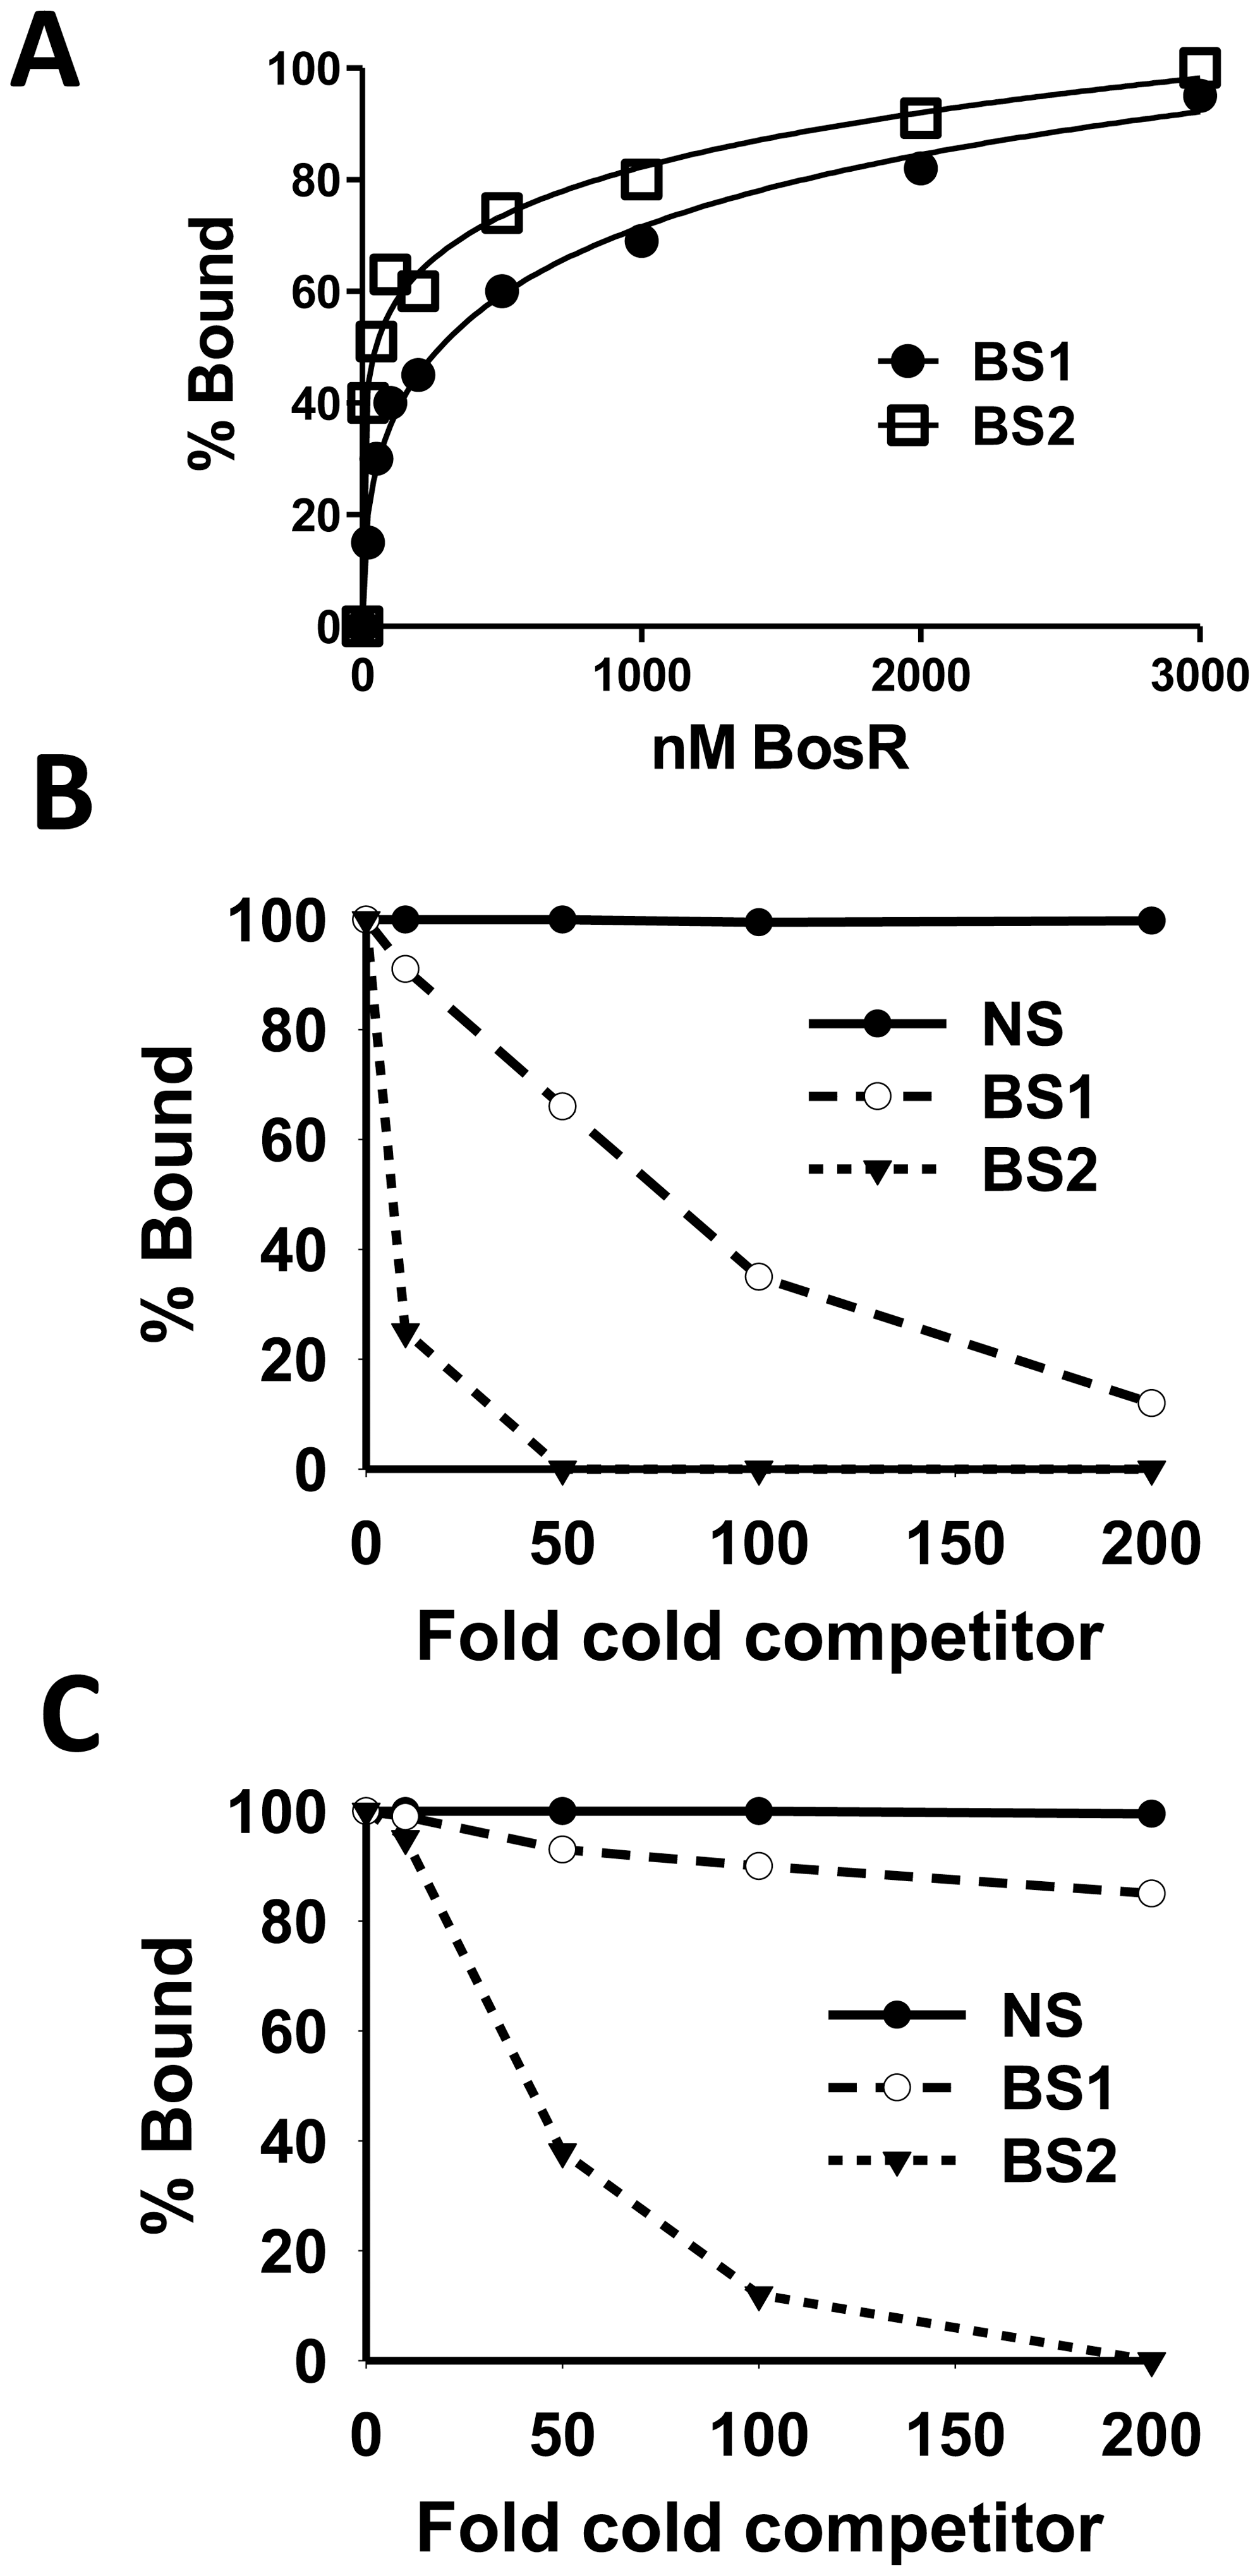 Comparison of the relative affinity of BosR for BS1 (ZM132) and BS2 (ZM127).